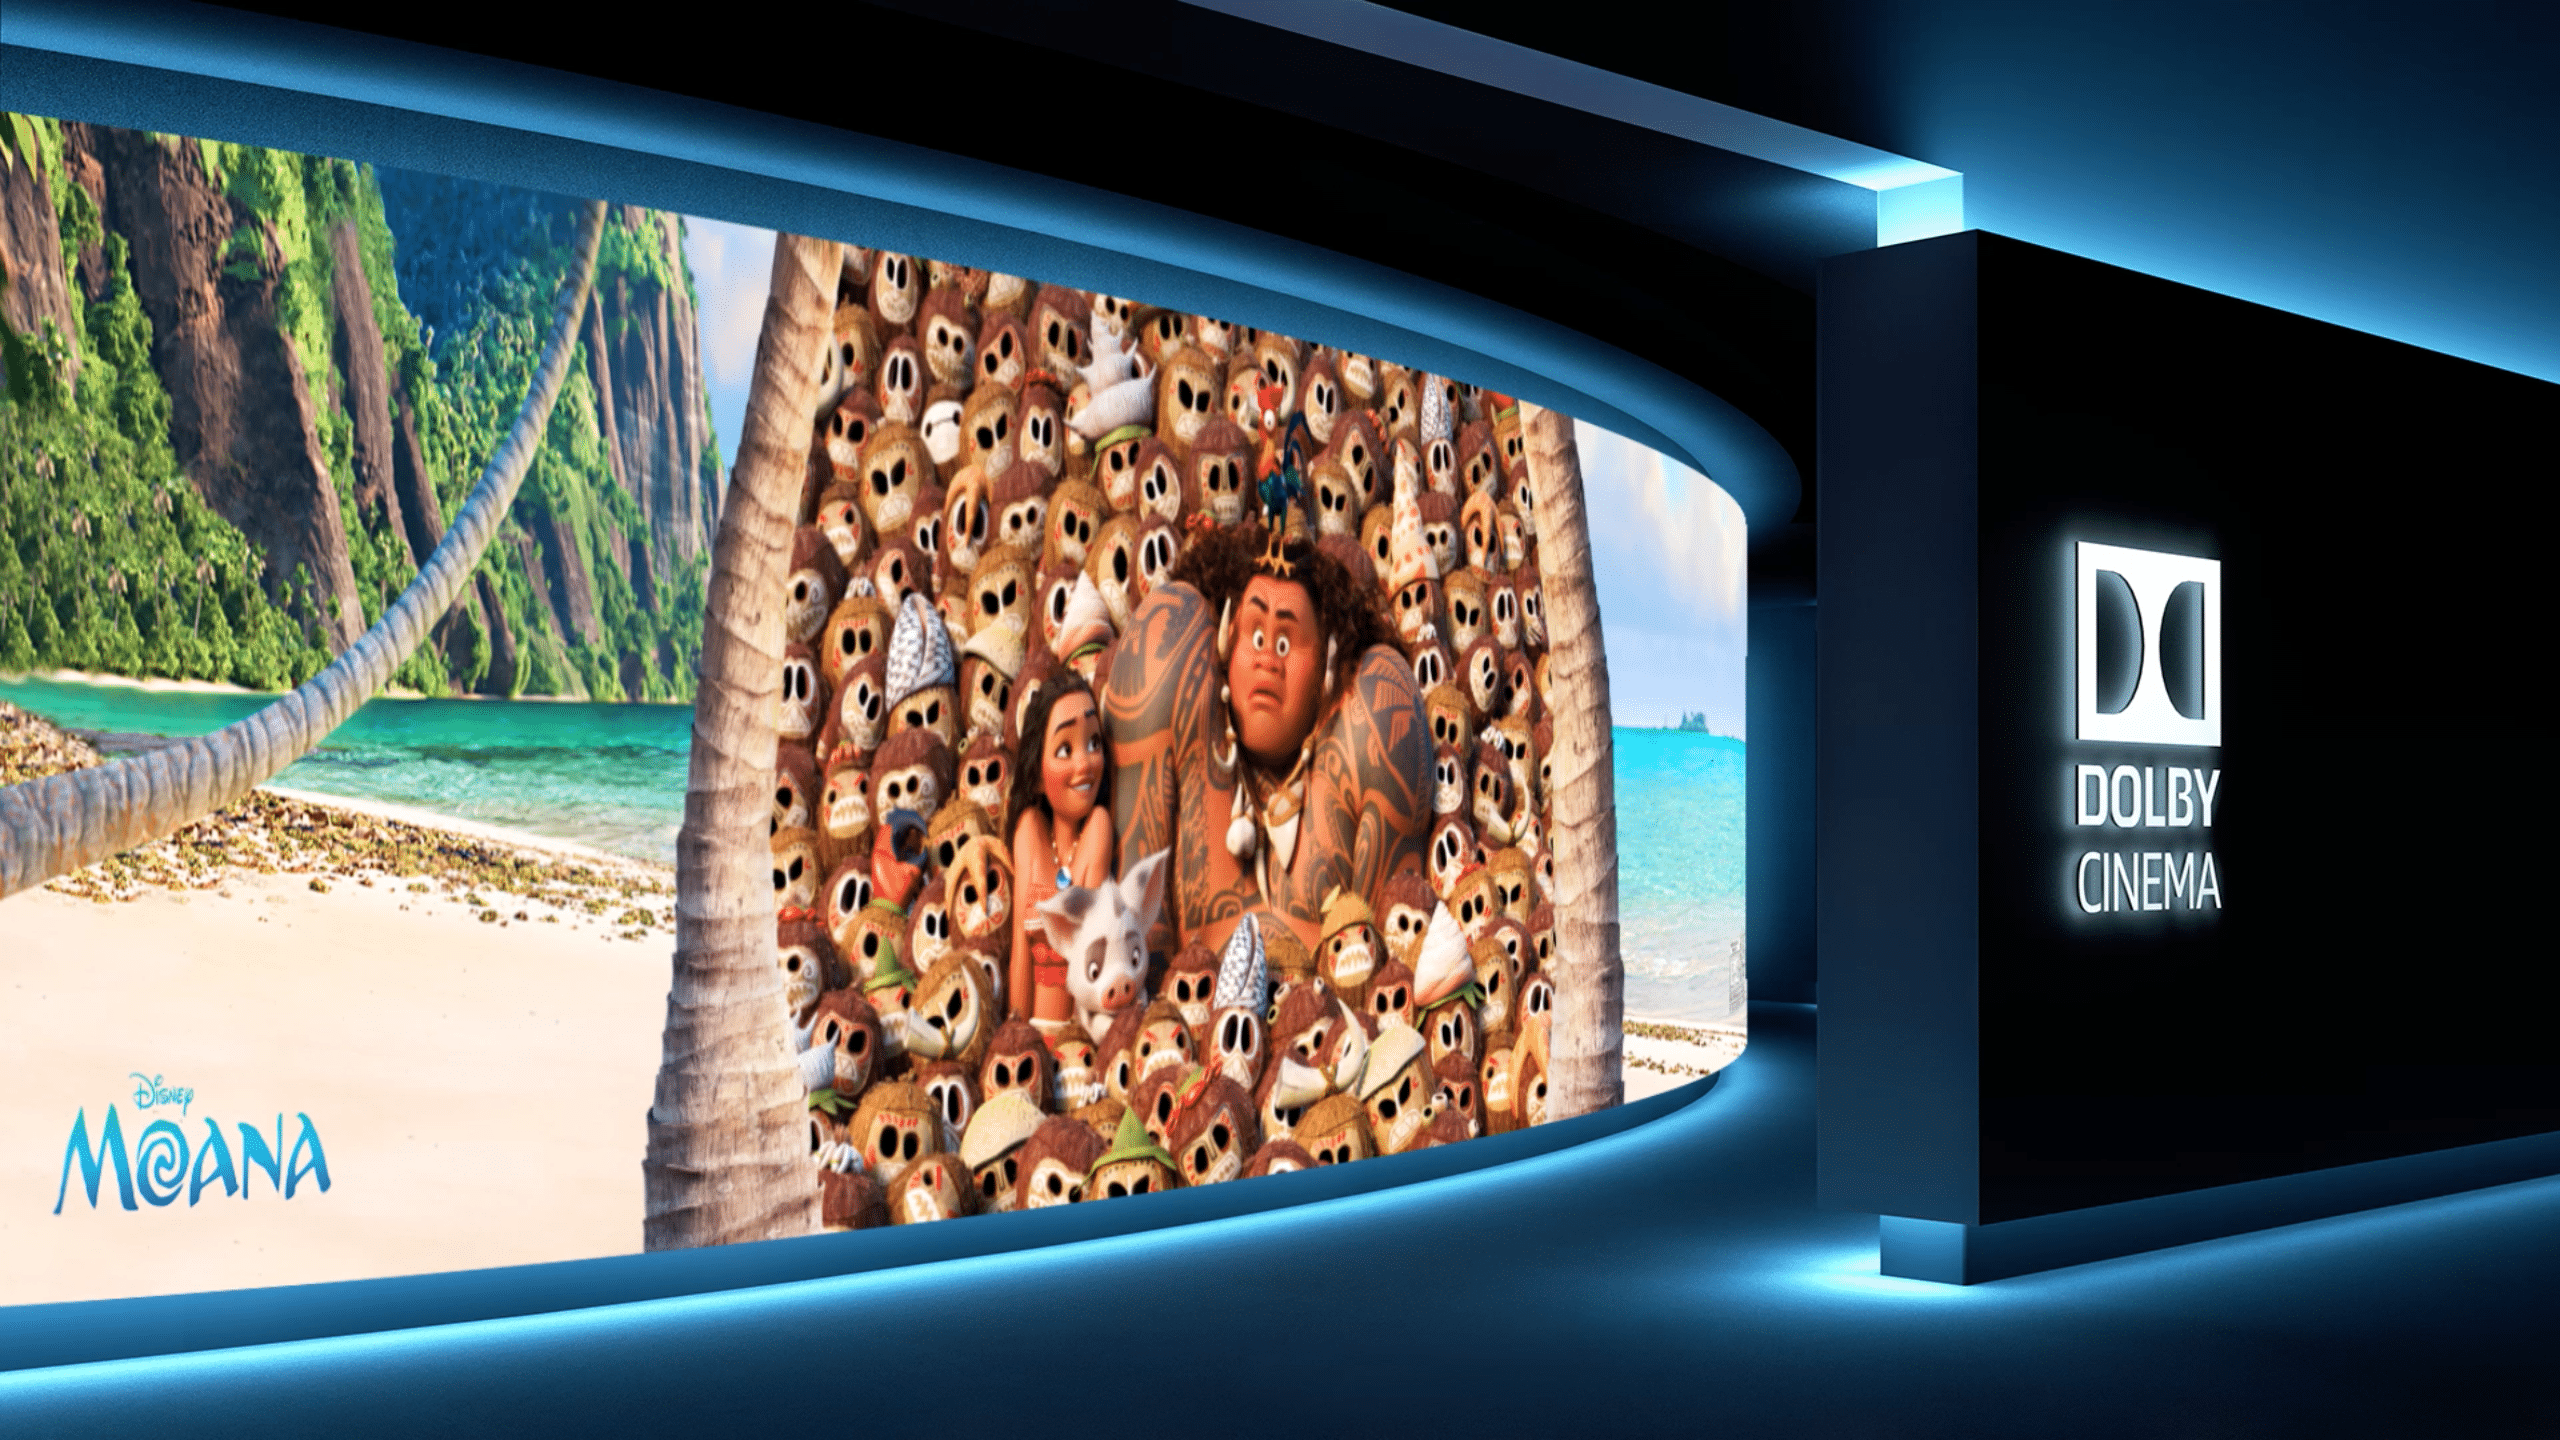 Disney's Moana Movie Review and Dolby Cinema in AMC Experience